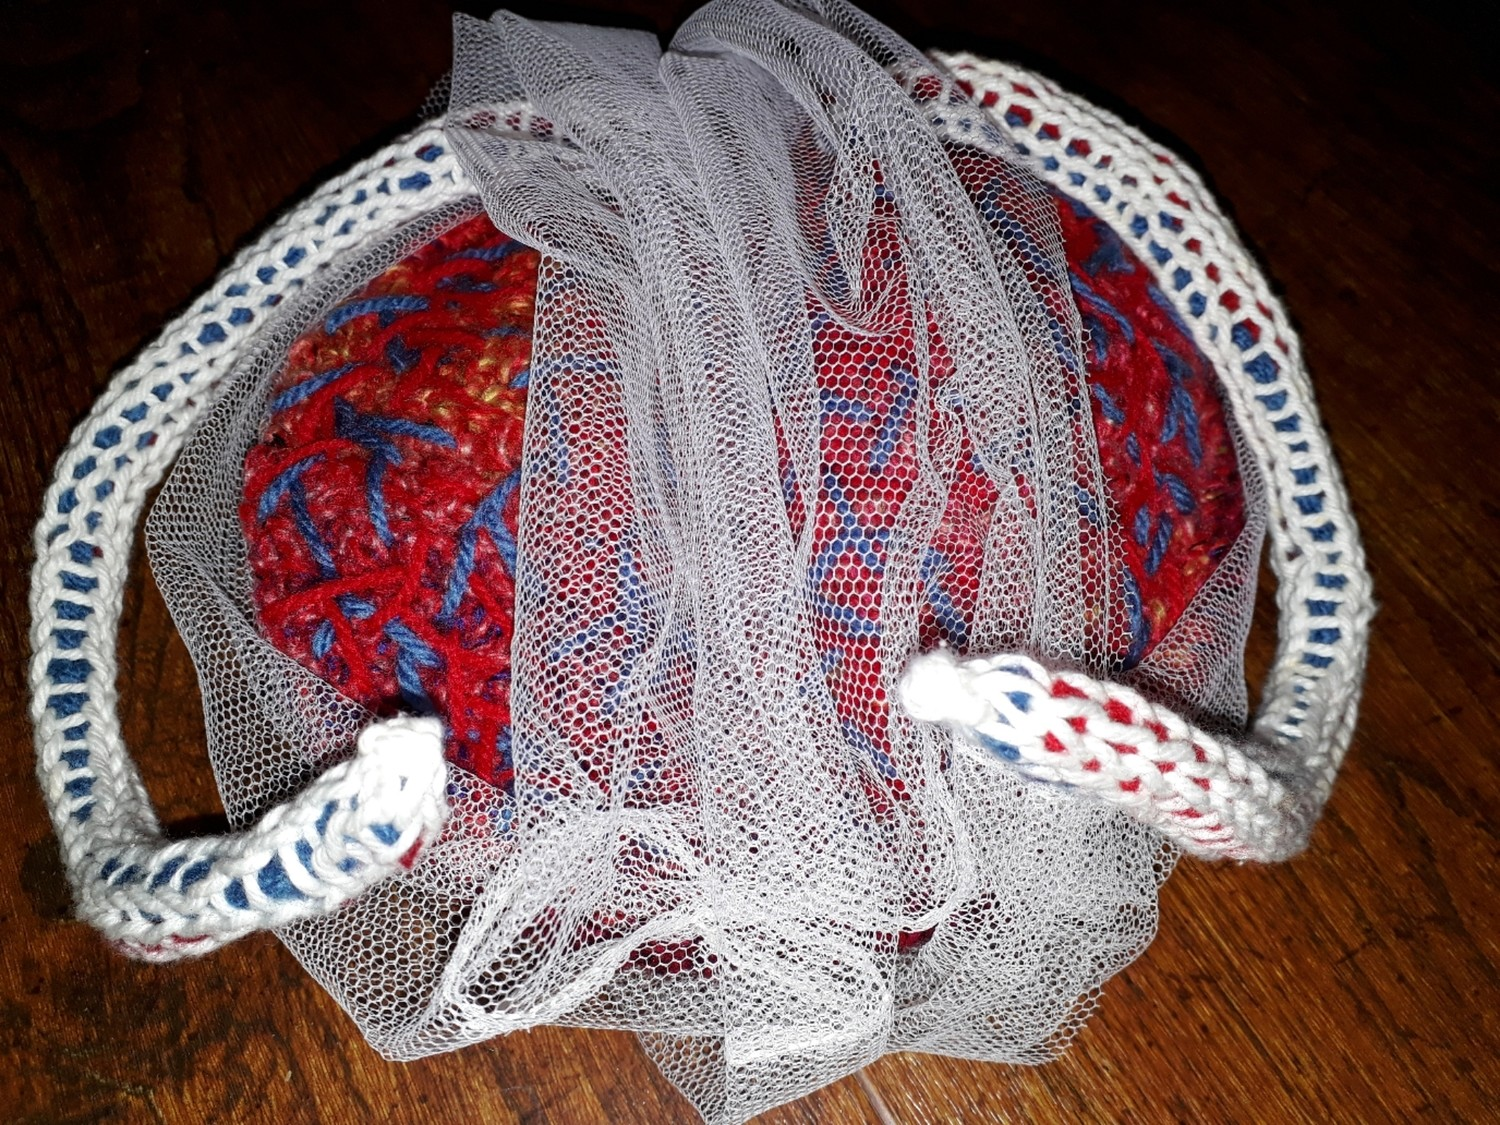 Crochet Twin Placenta Model for Childbirth Education